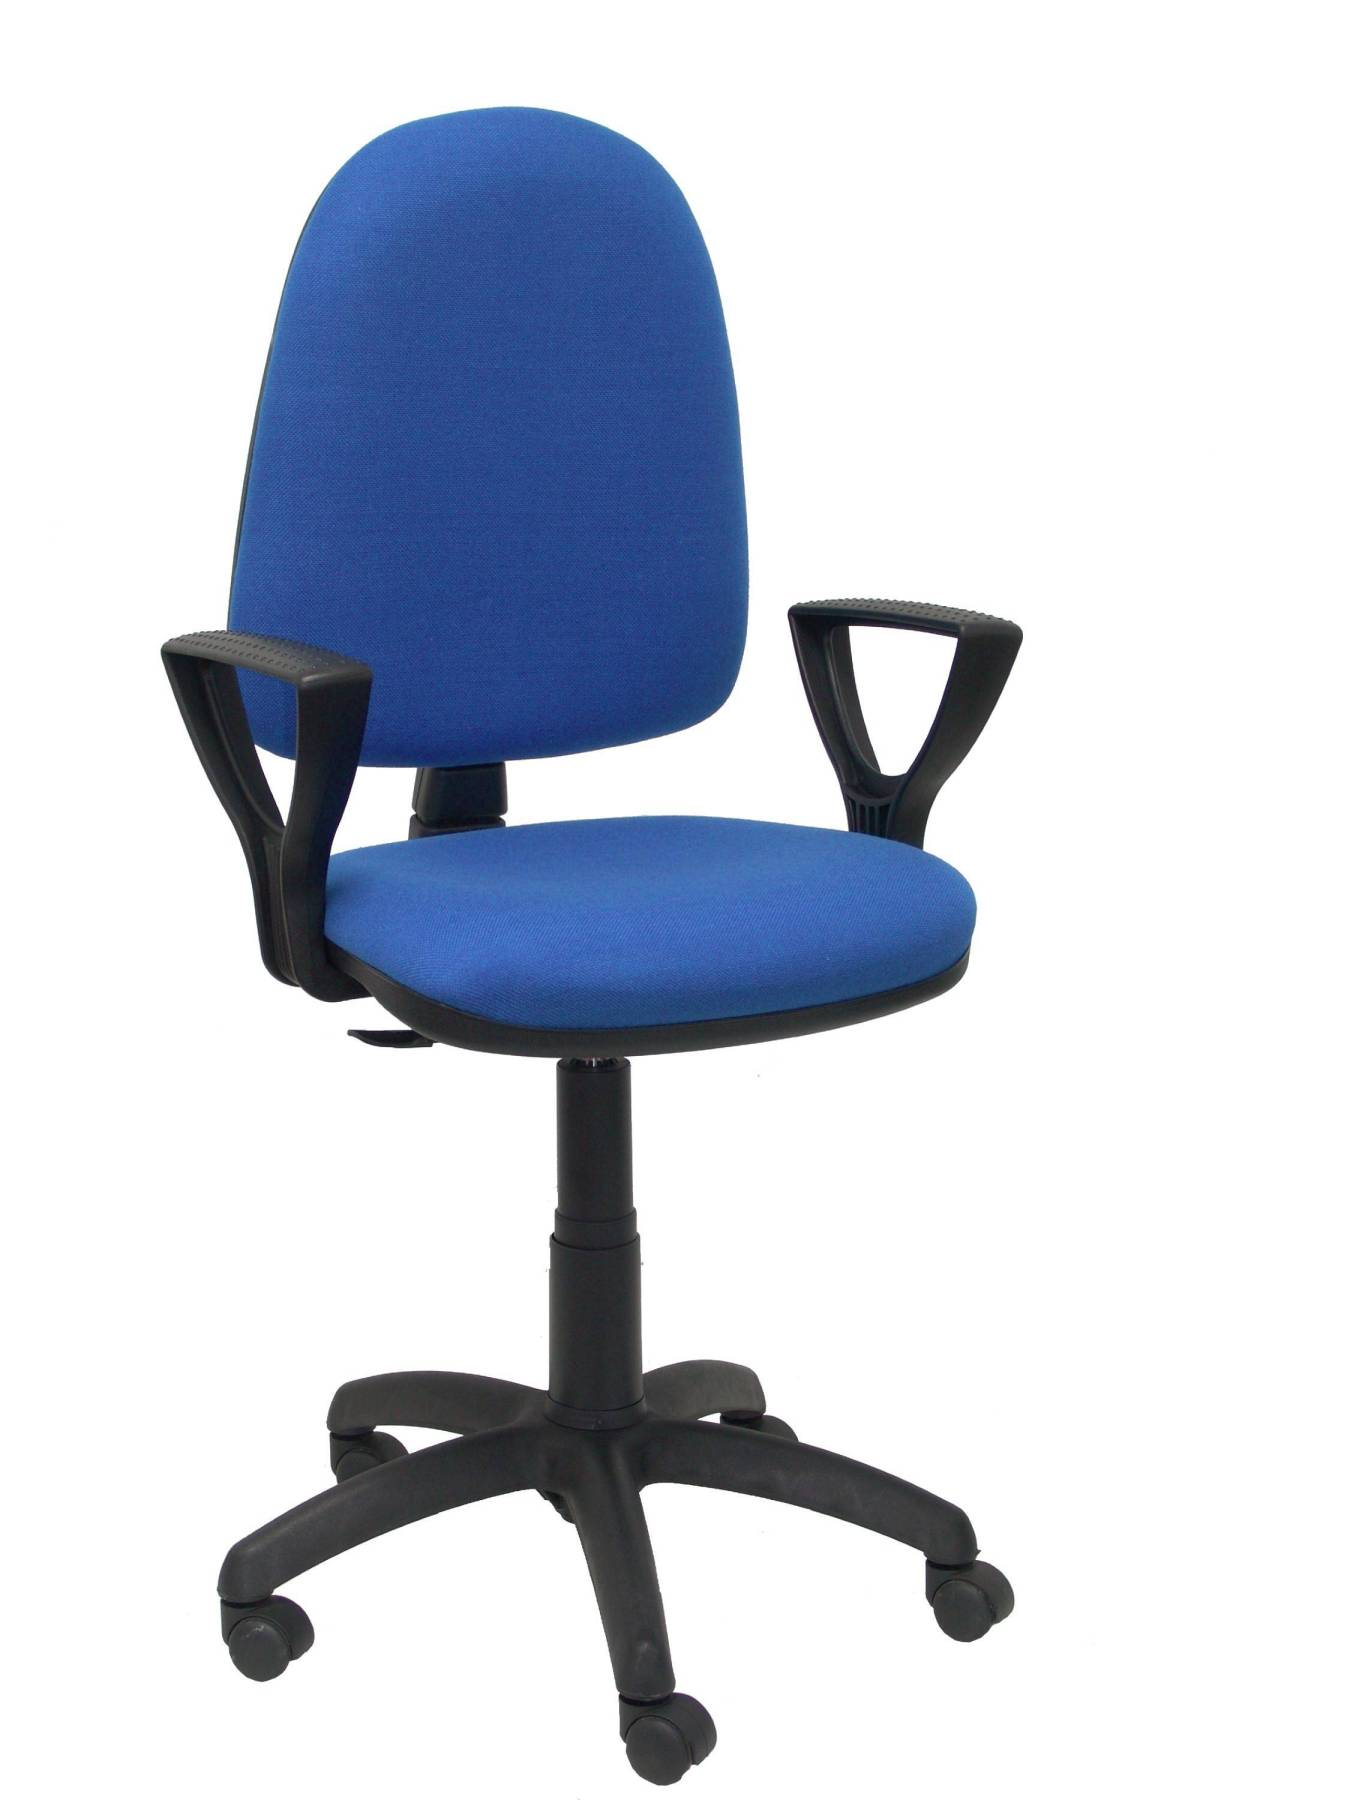 Ergonomic Office Chair With Mechanism Permanent Contact And Adjustable Height Seat And Back Upholstered In